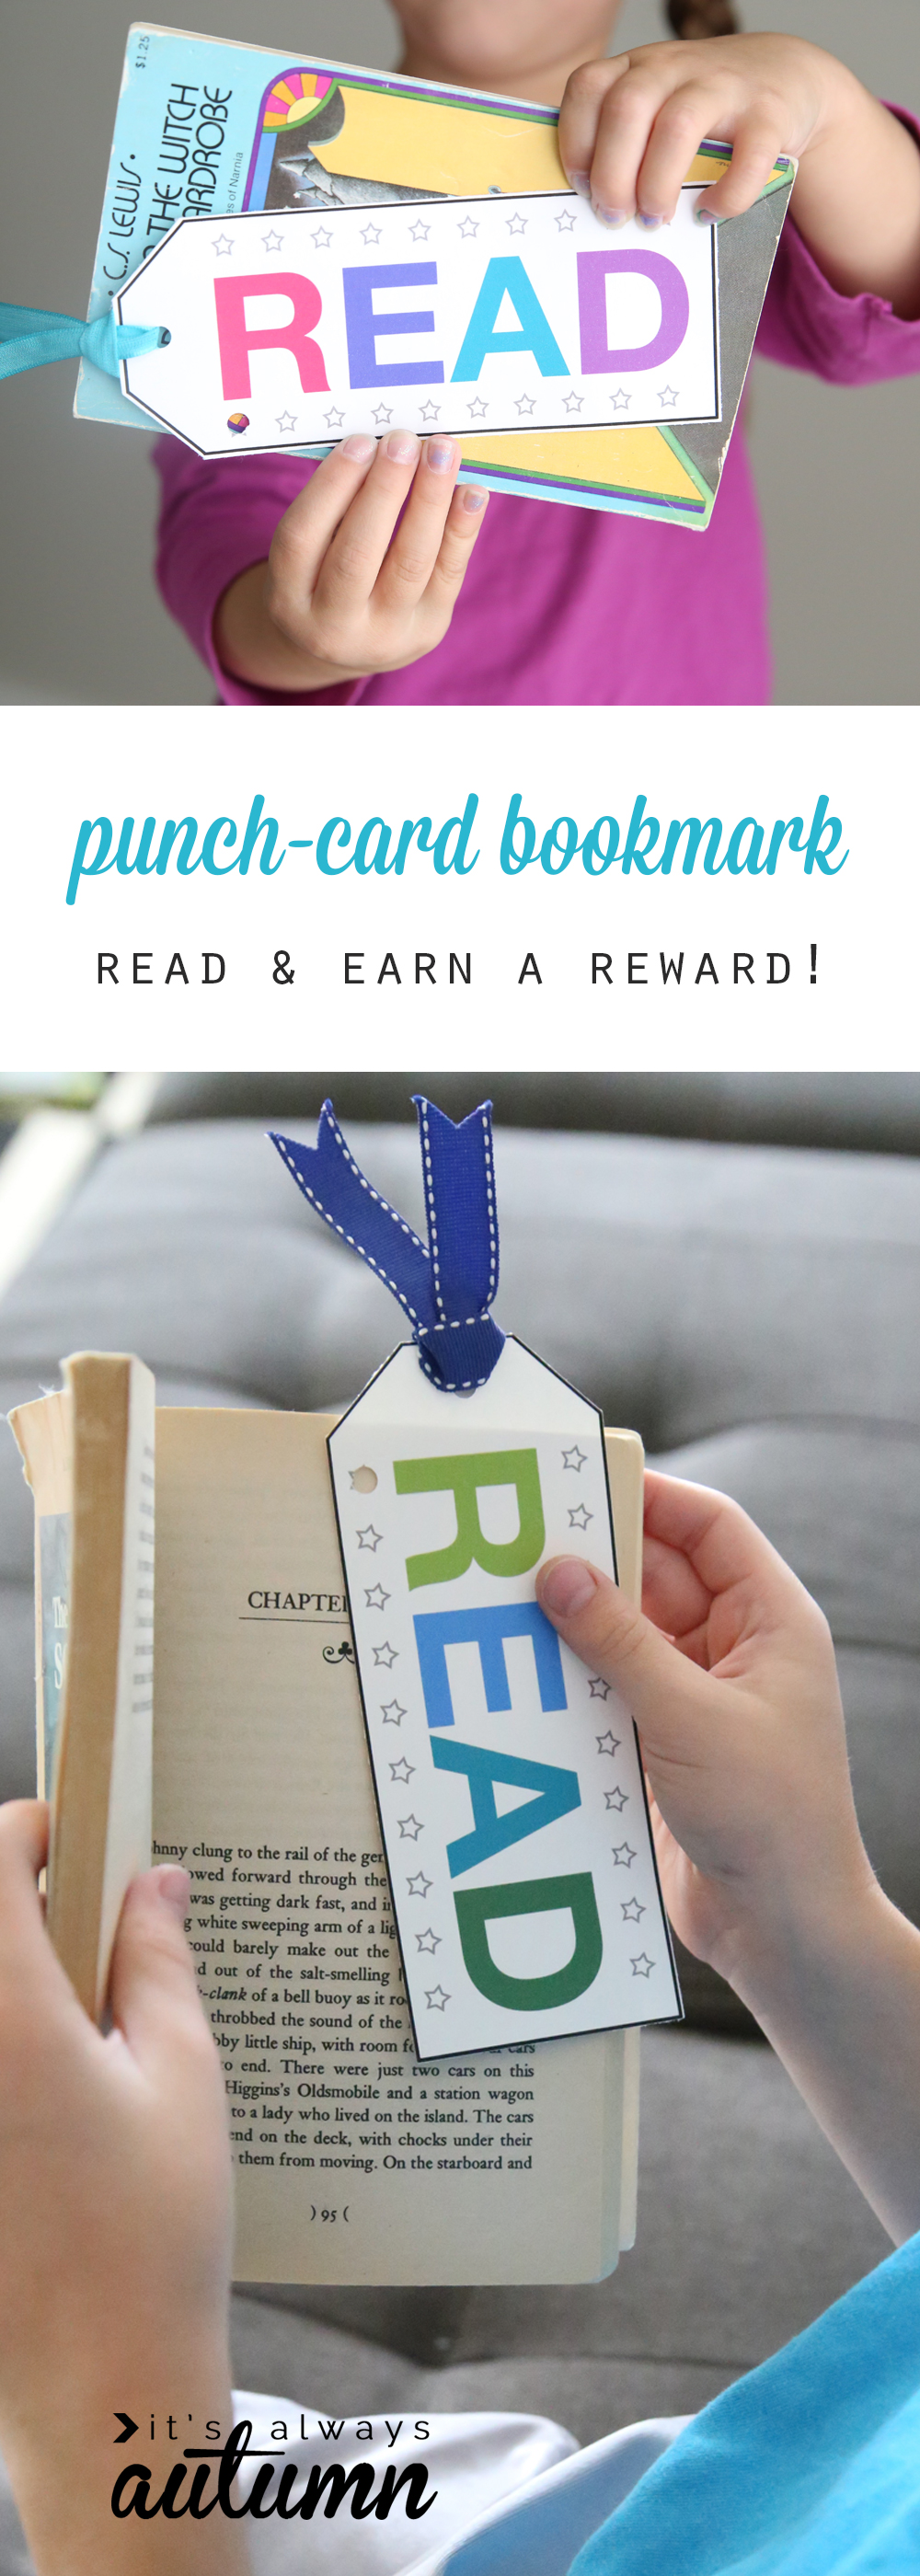 Kids holding books with punch card bookmarks